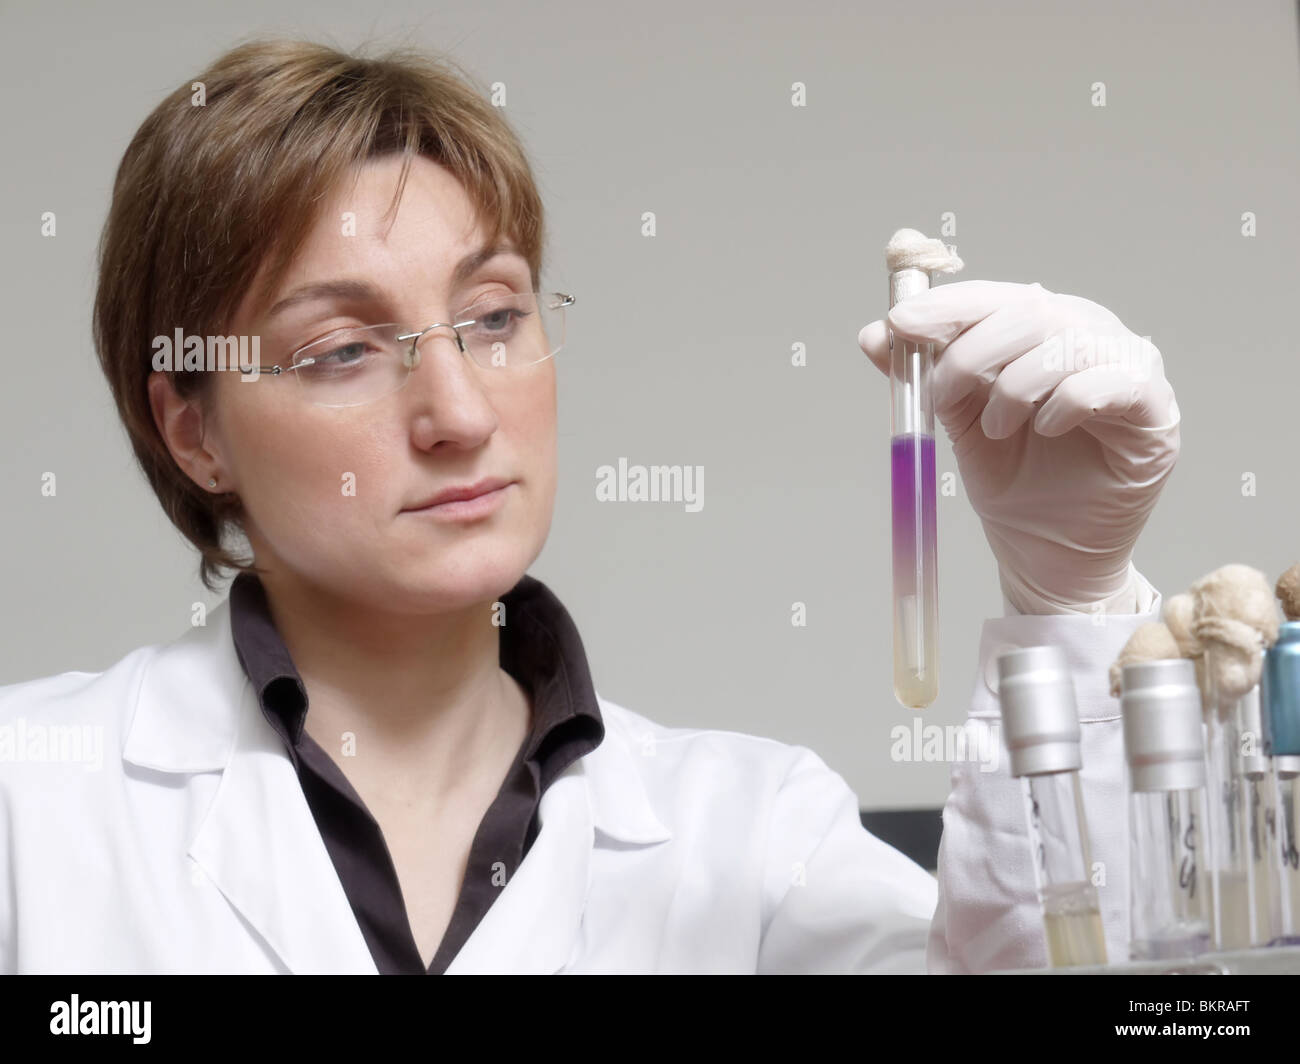 Female laboratory technician looking at test tube with specimen - Stock Image